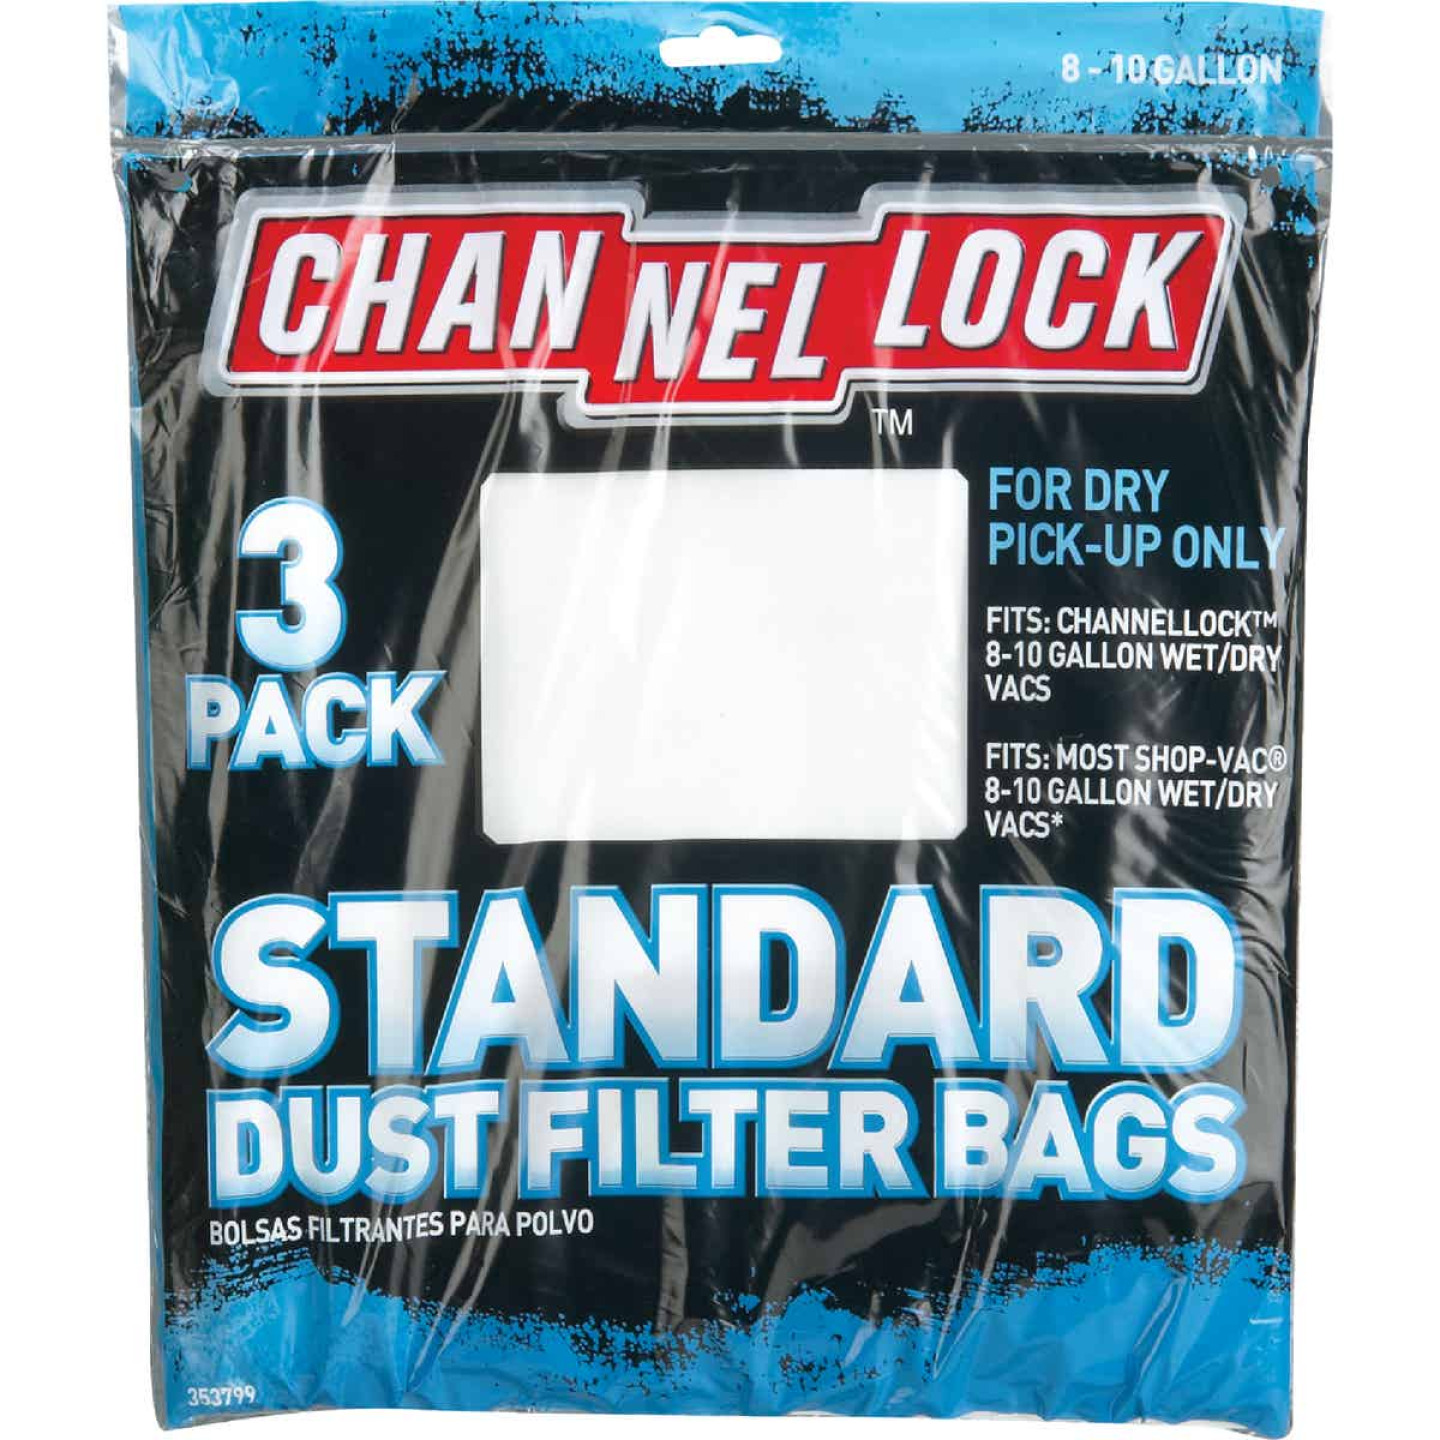 Channellock Paper Standard 8 to 10 Gal. Filter Vacuum Bag (3-Pack) Image 2